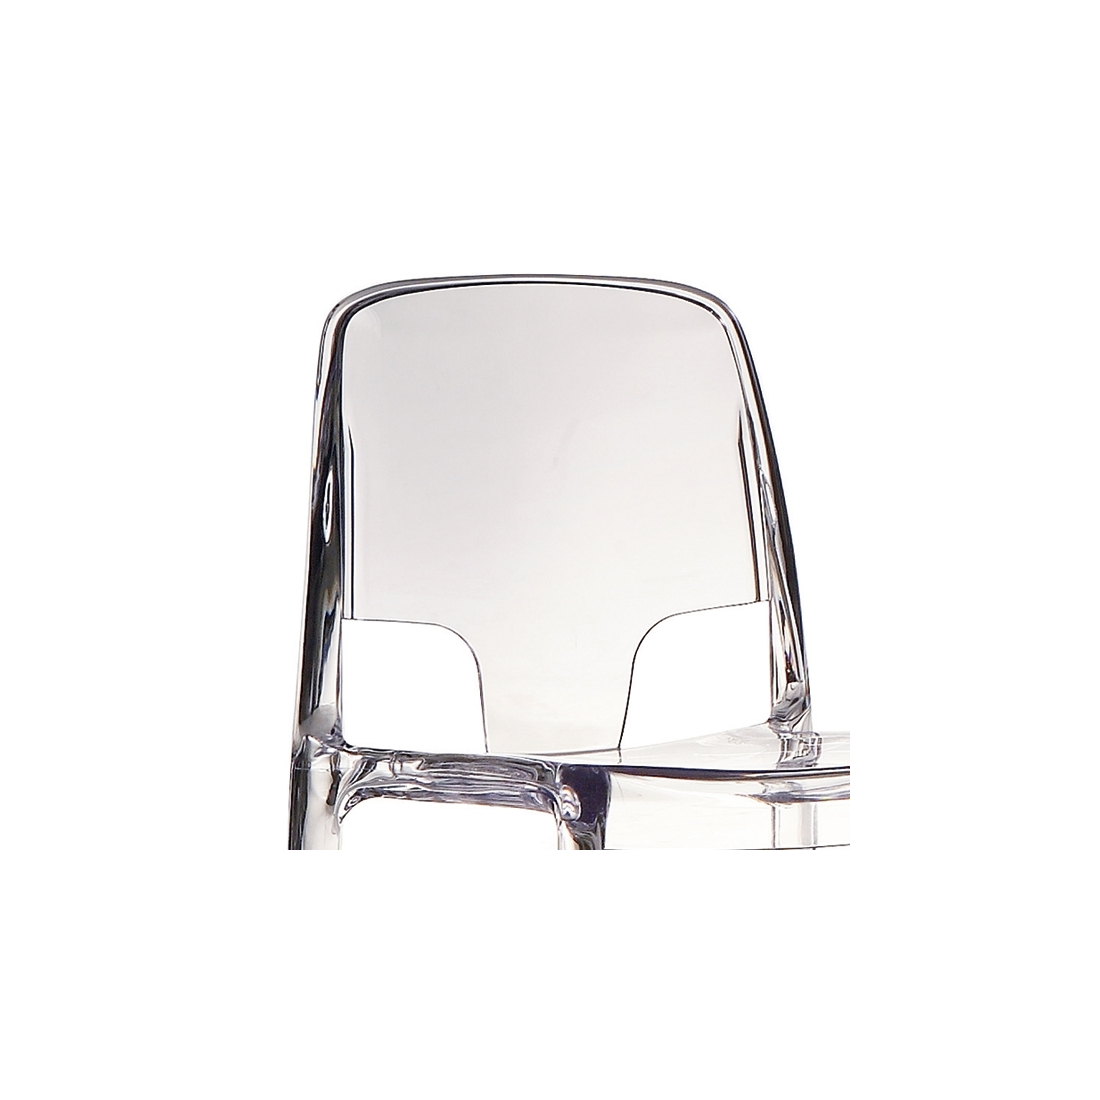 Chaise transparente design infiniti margot chaises design for Chaise transparente design